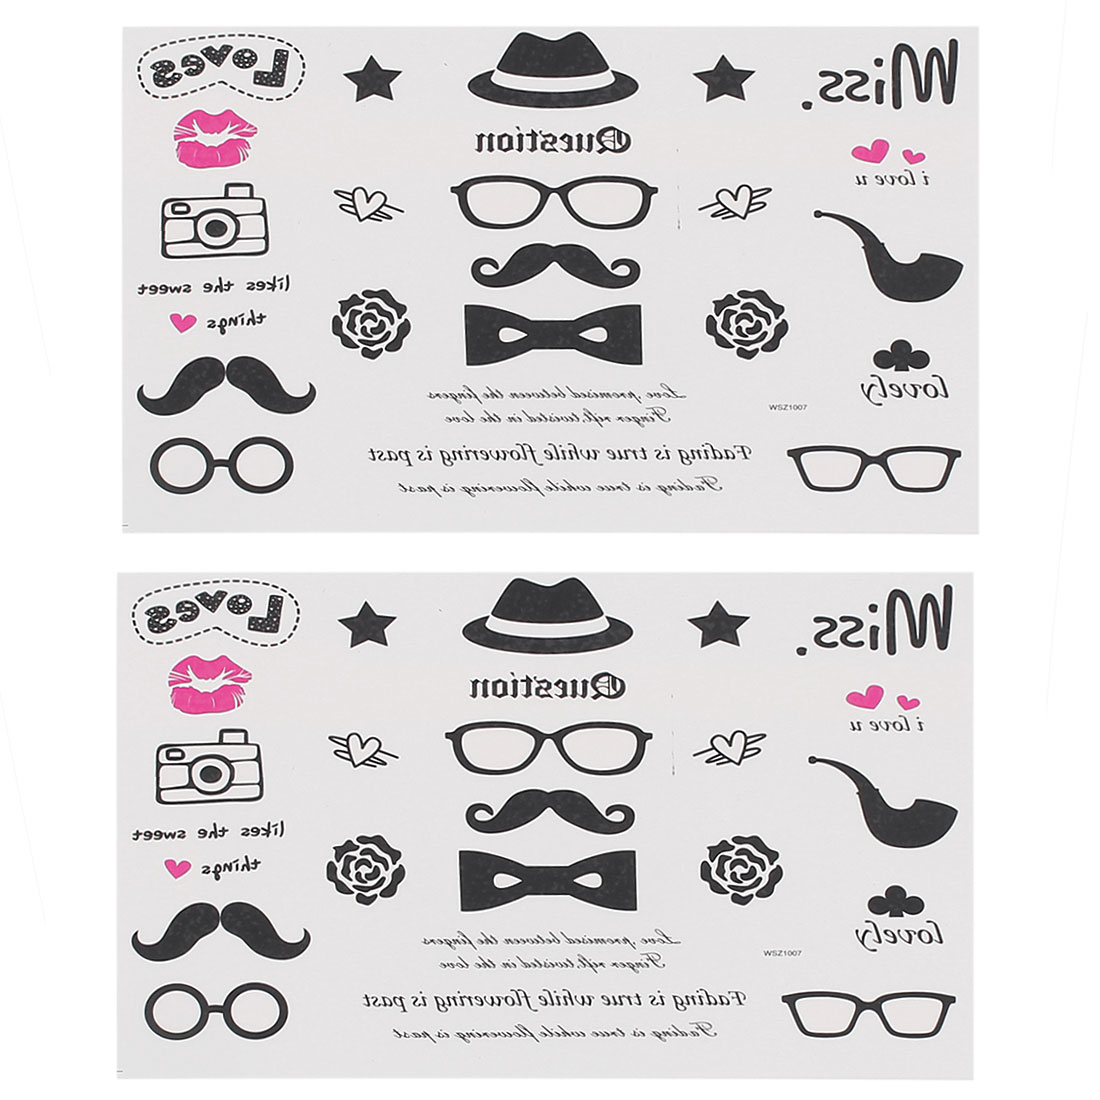 2 pieces Glasses Hats Body Removable Sticker Temporary Tattoos